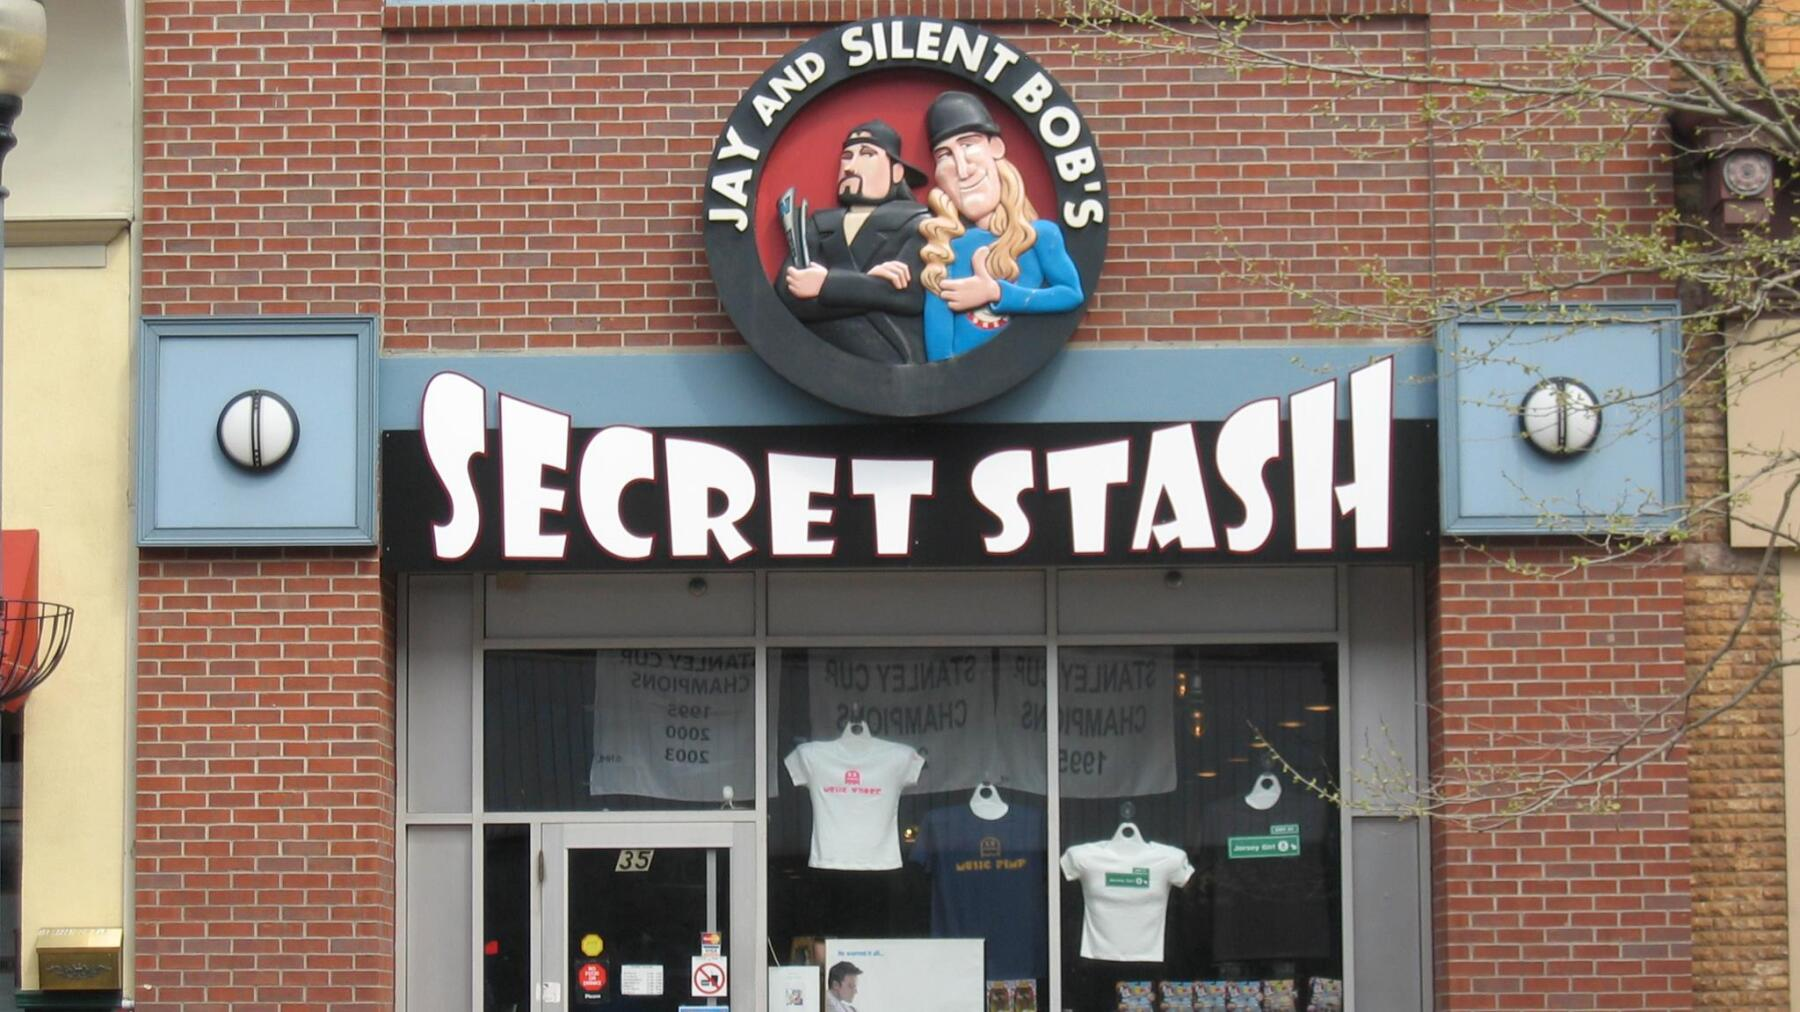 Jay and Silent Bob's